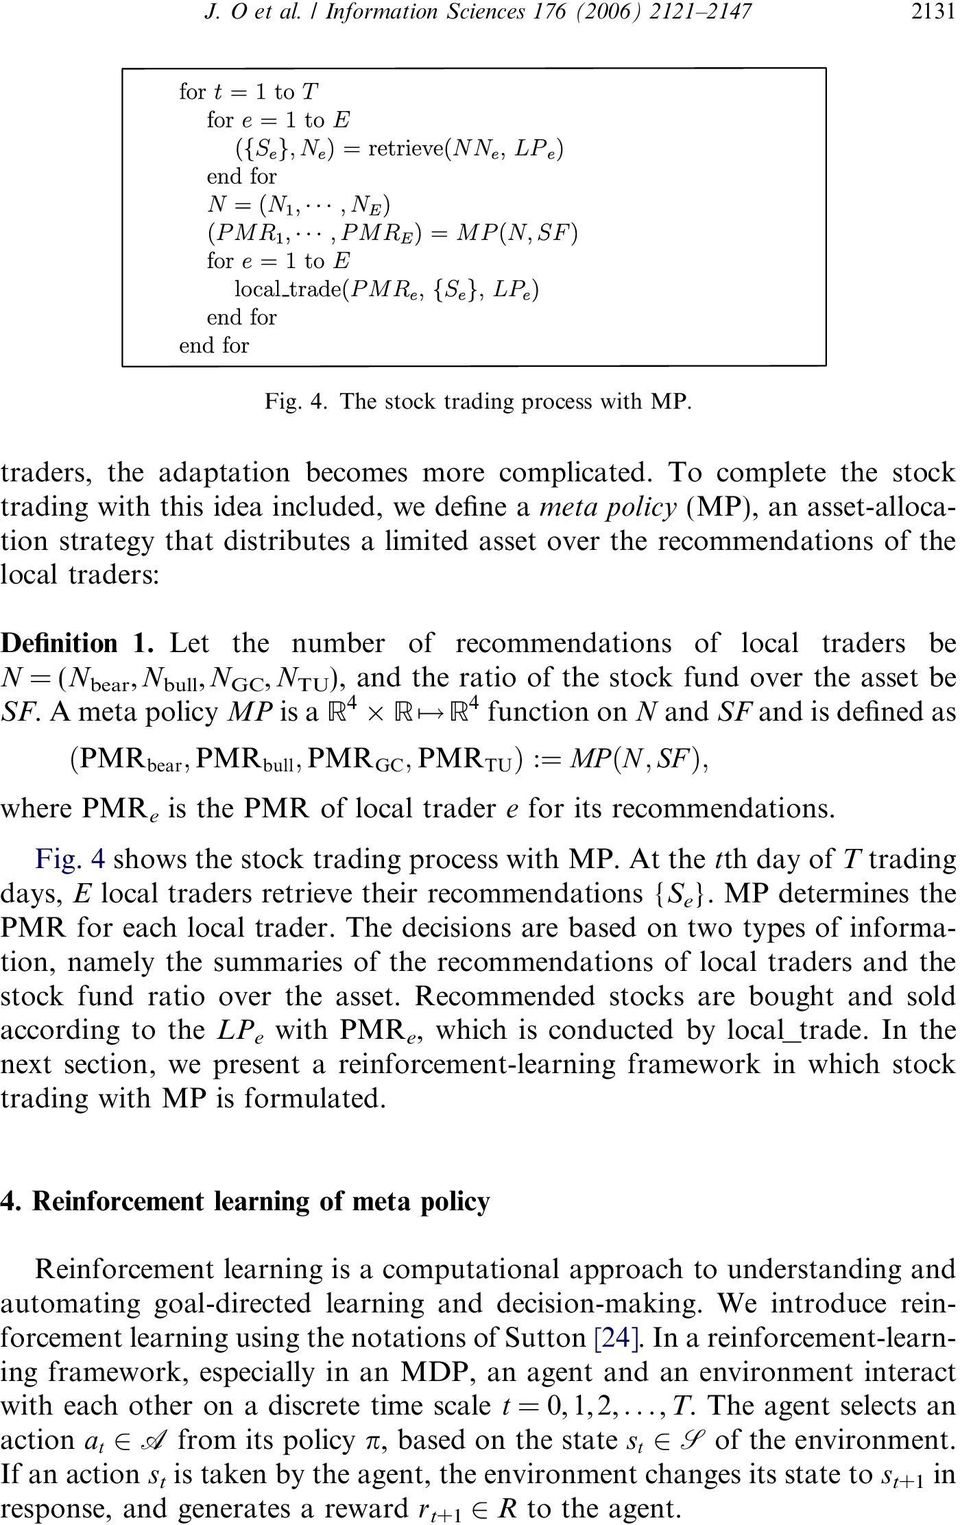 Adaptive stock trading with dynamic asset allocation using